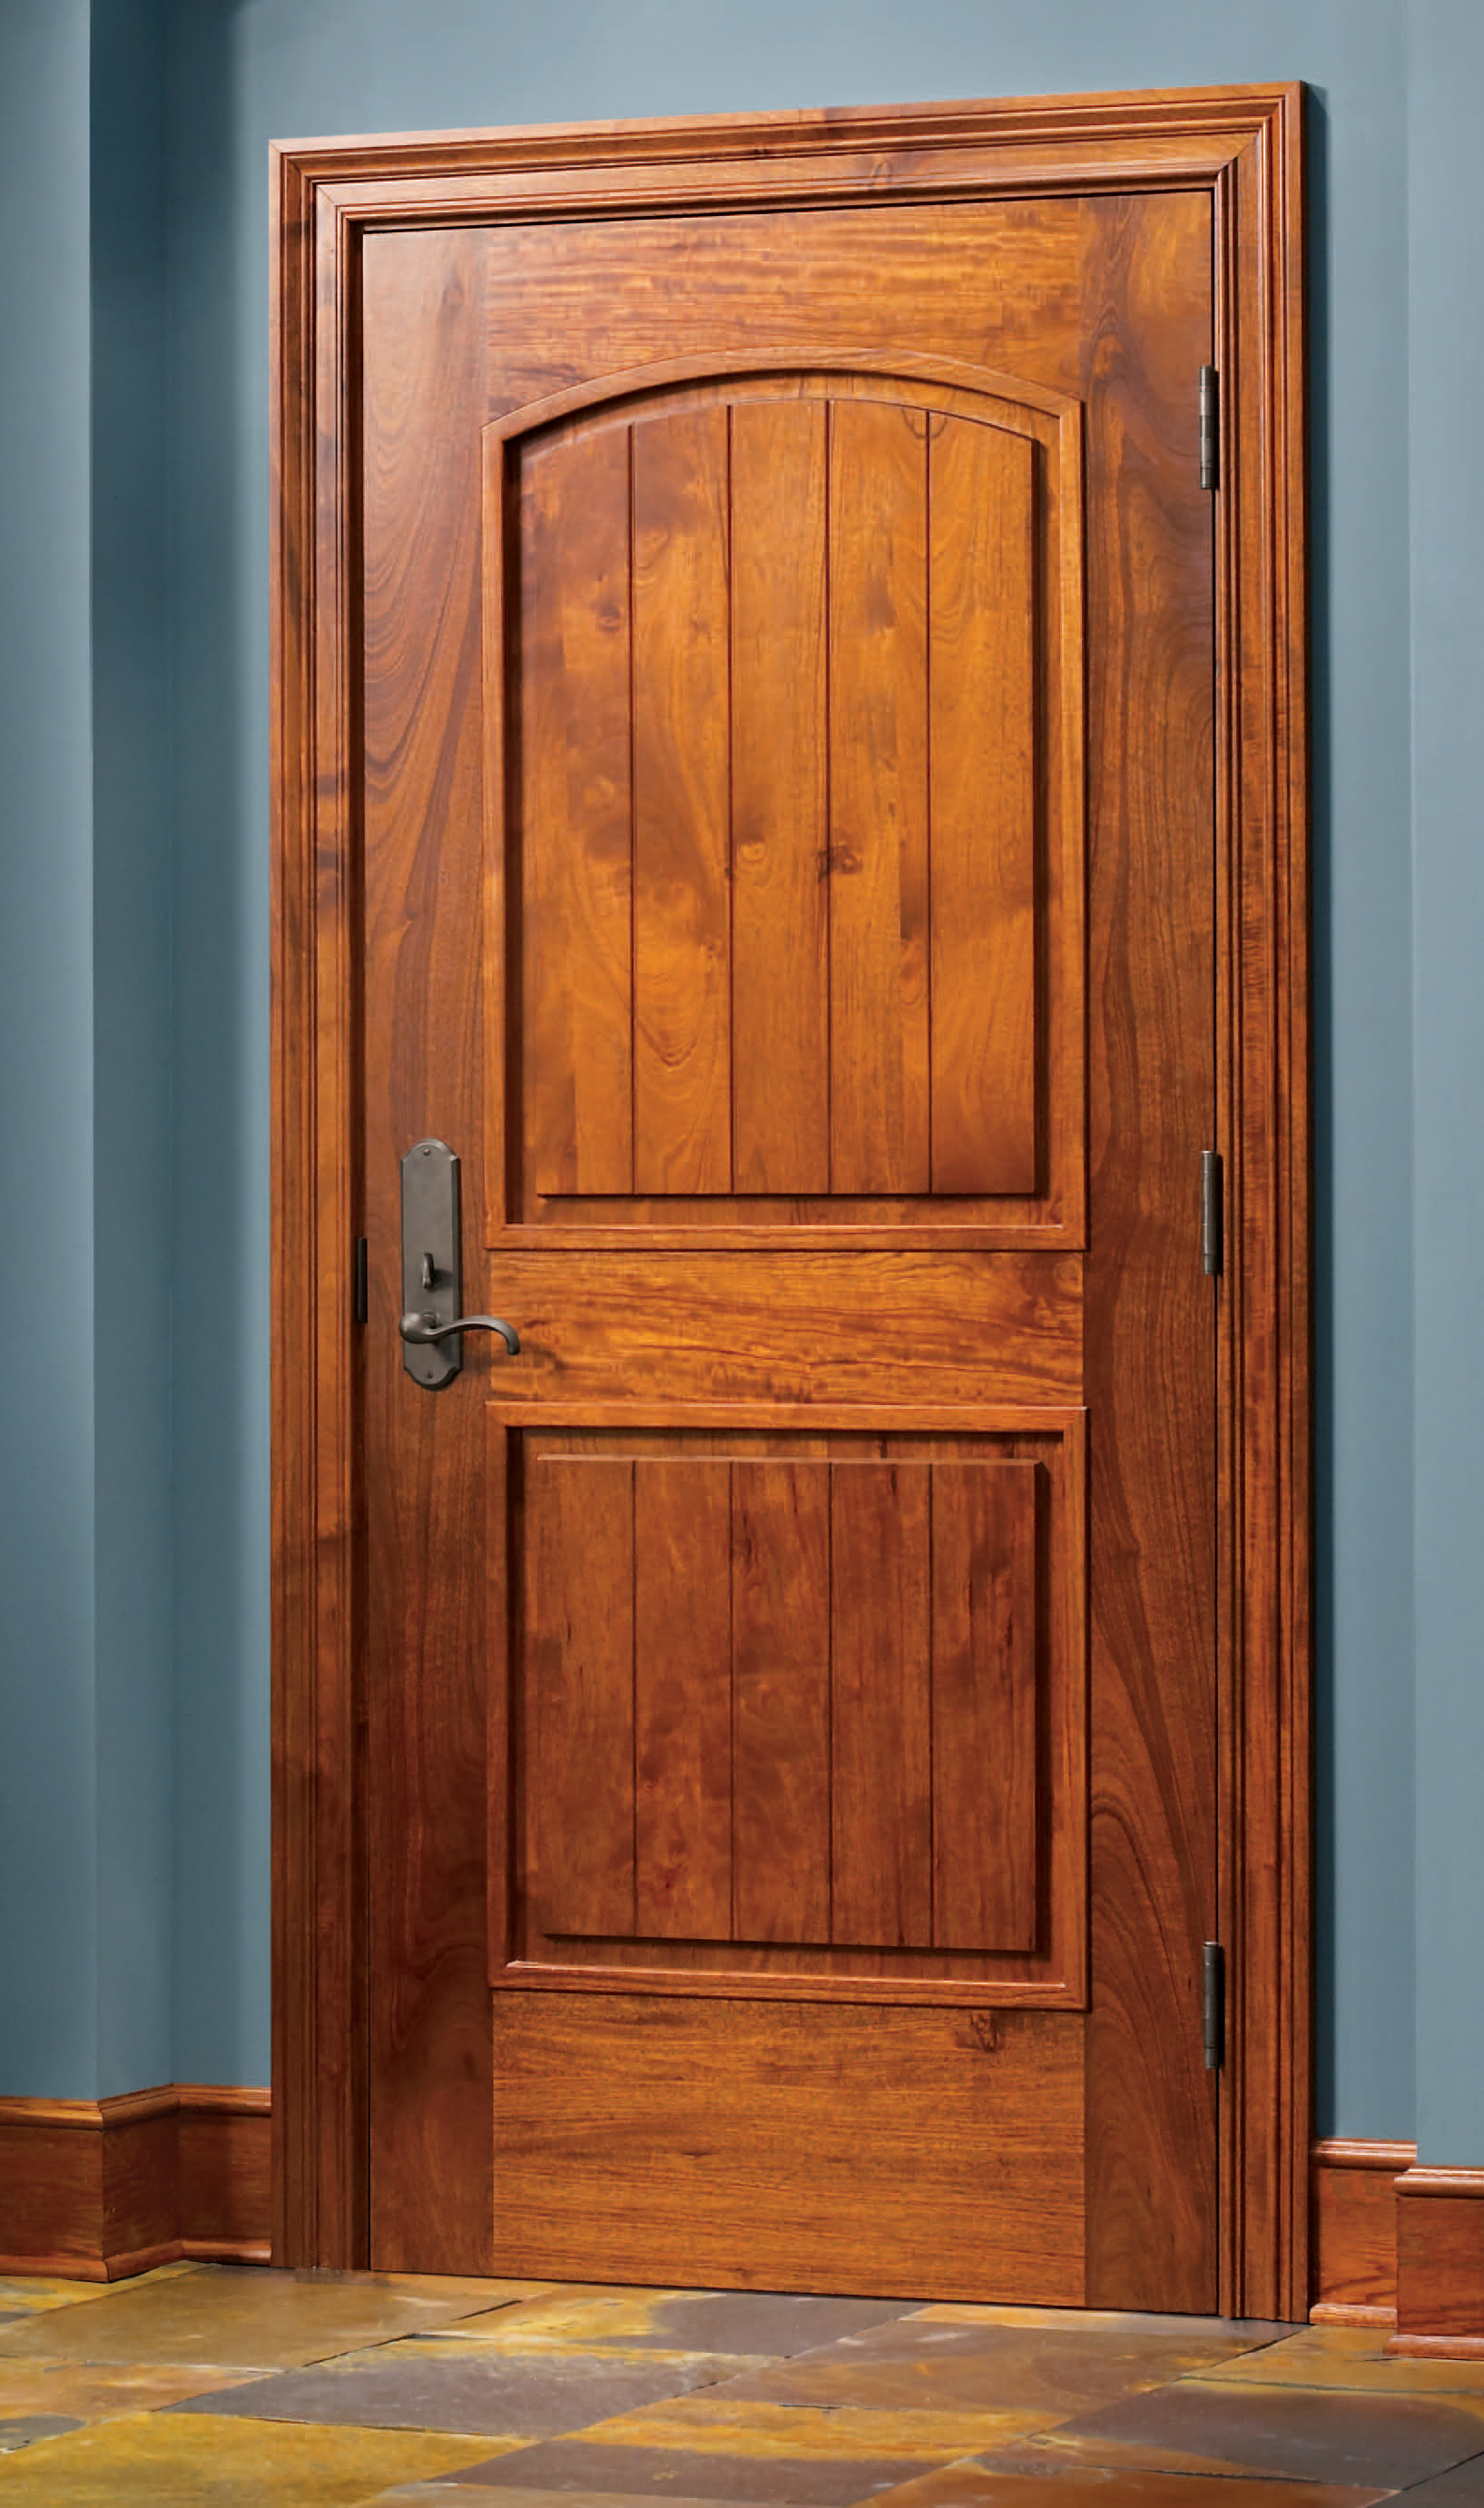 Marvin Entry Doors ProSales Online Products Doors Entryway Marvin Wind